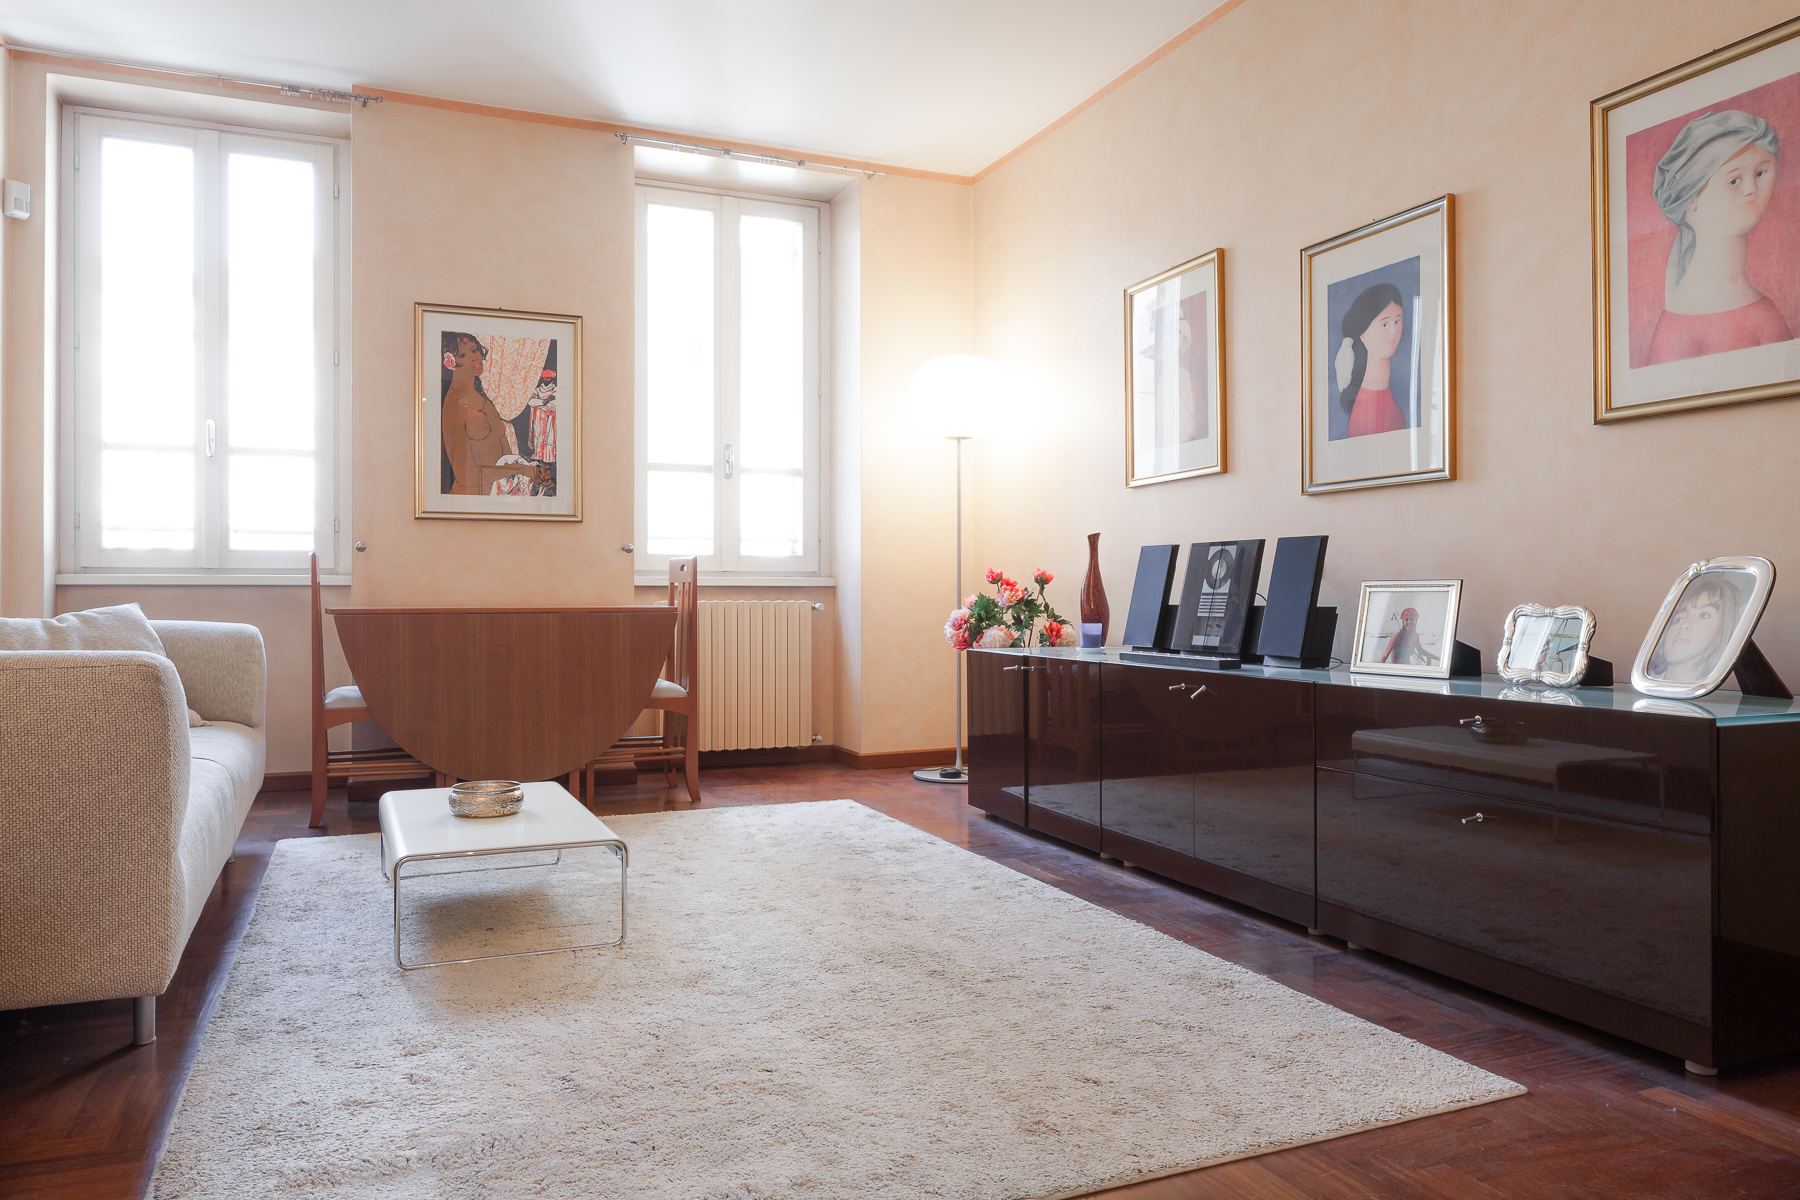 sales property at Renovated 1 bedroom apartment nearby Duomo